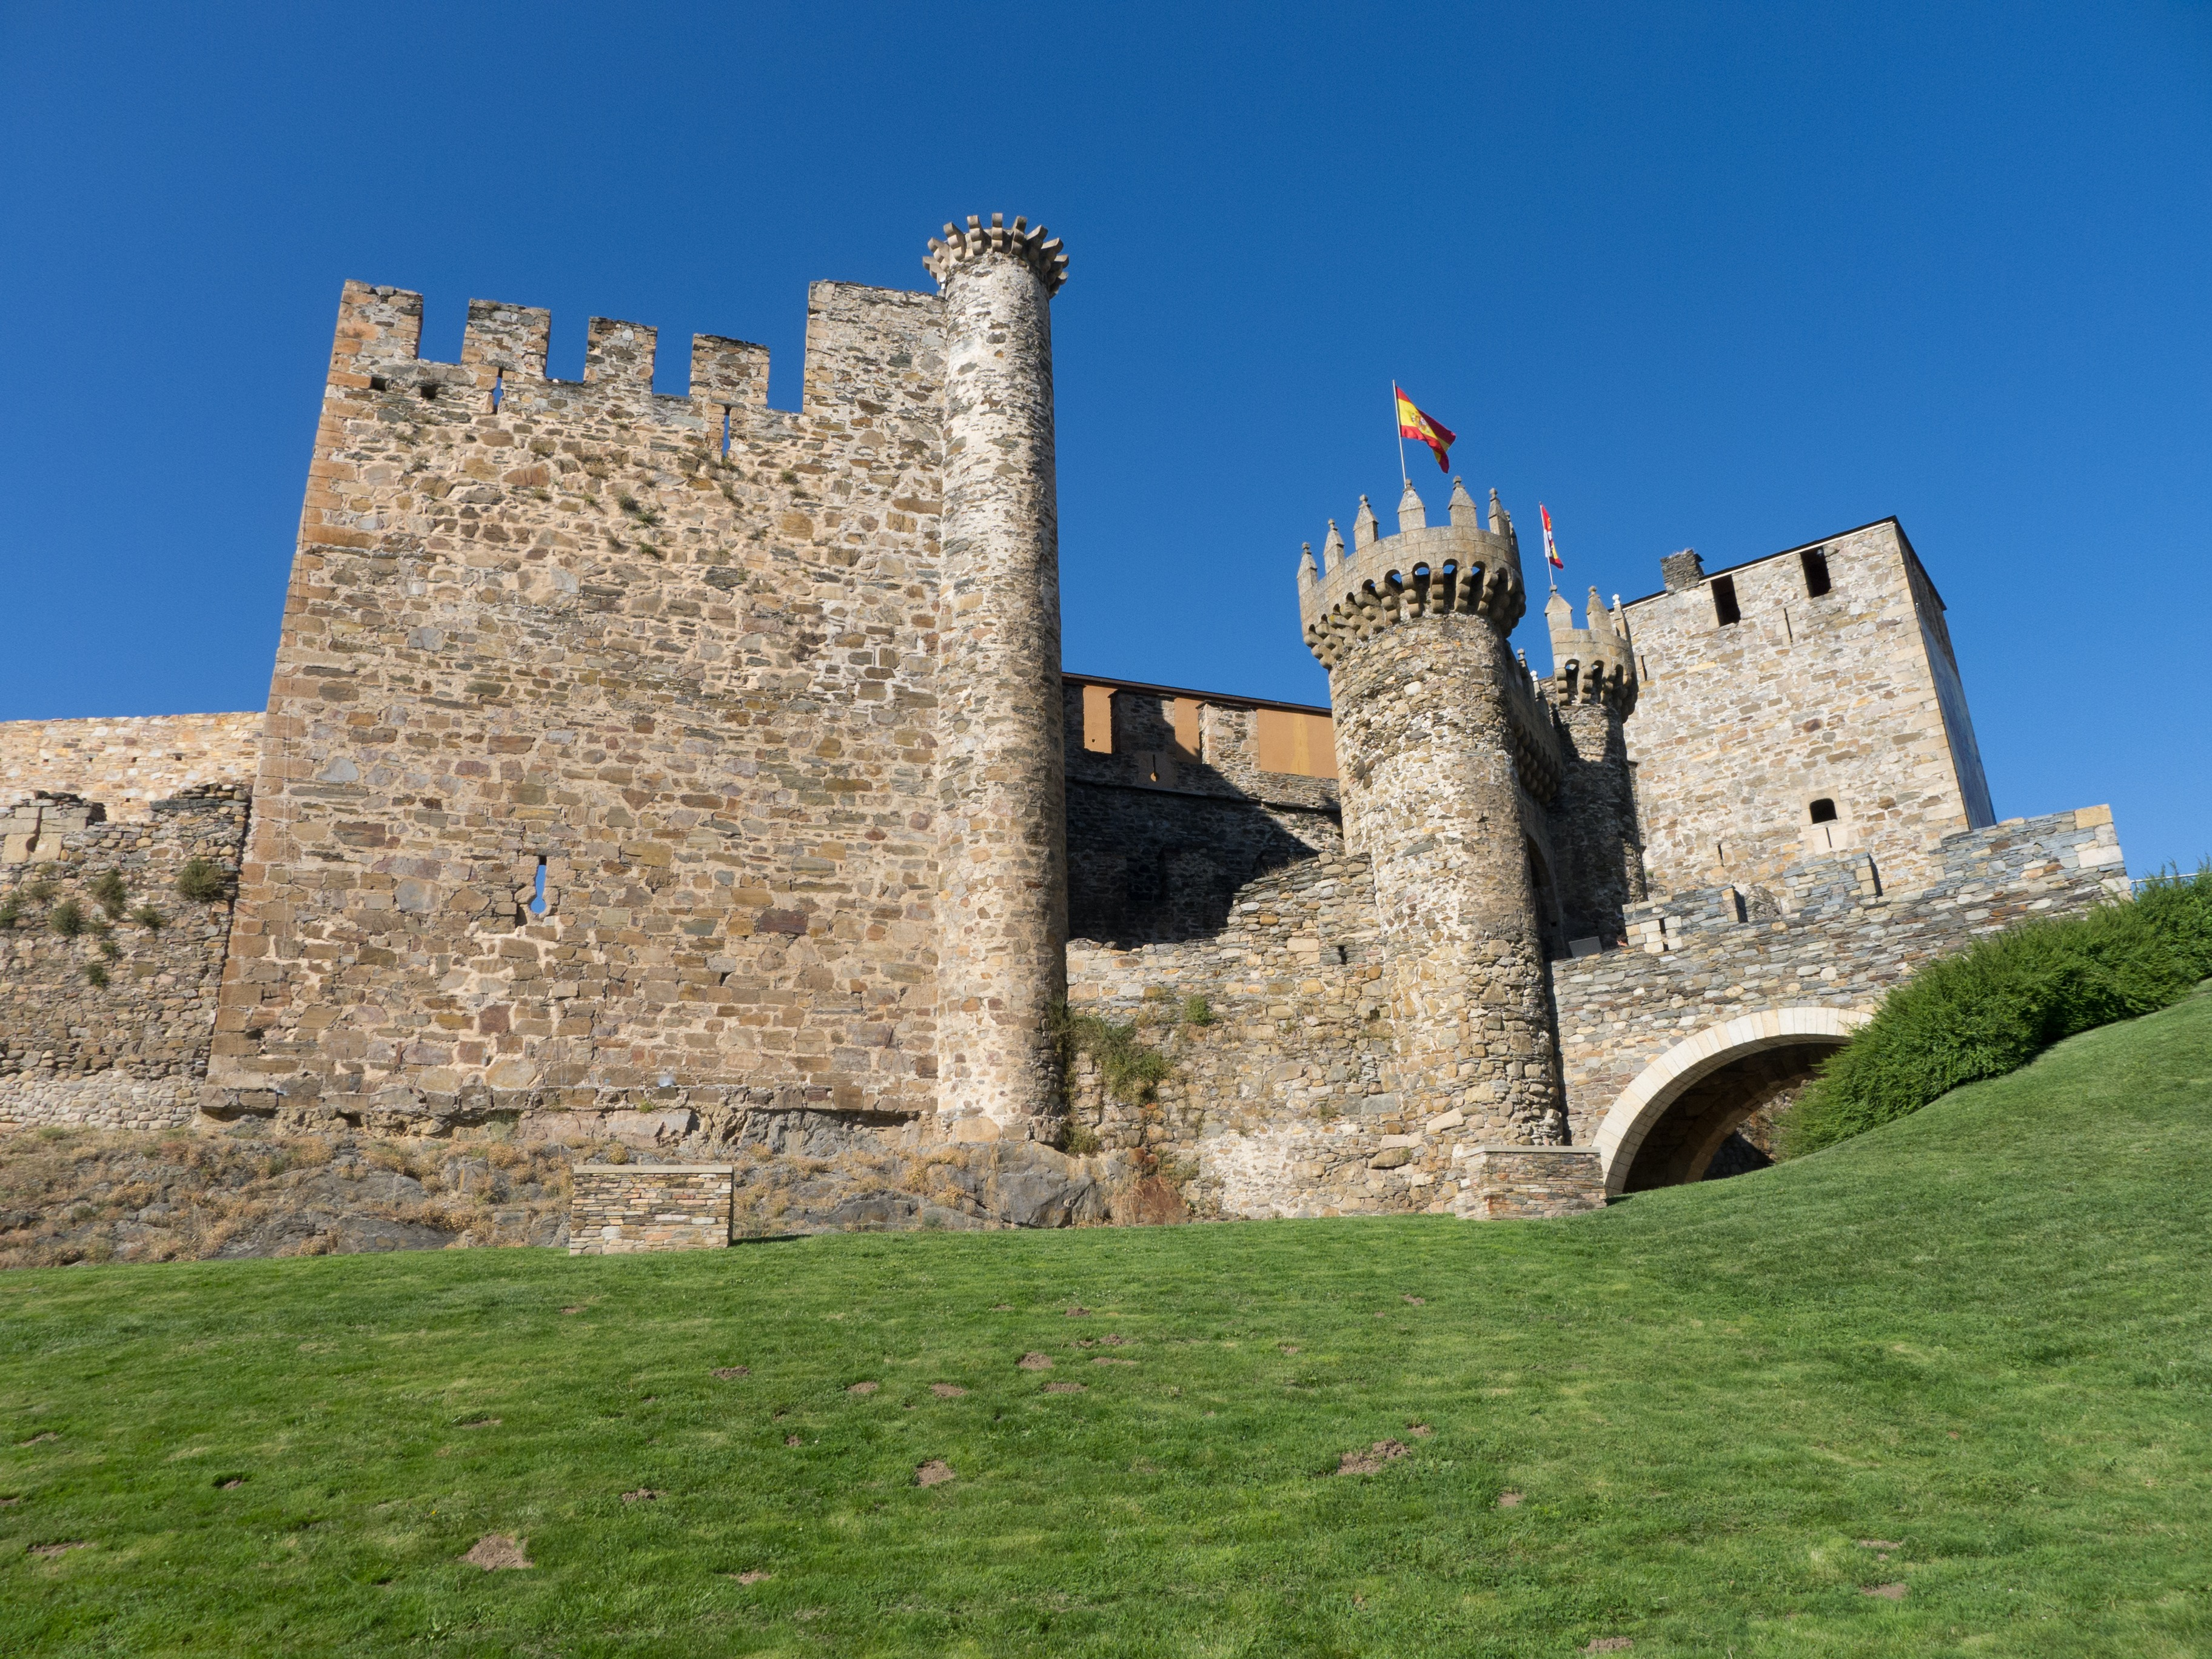 High stone fortress from middle ages free image